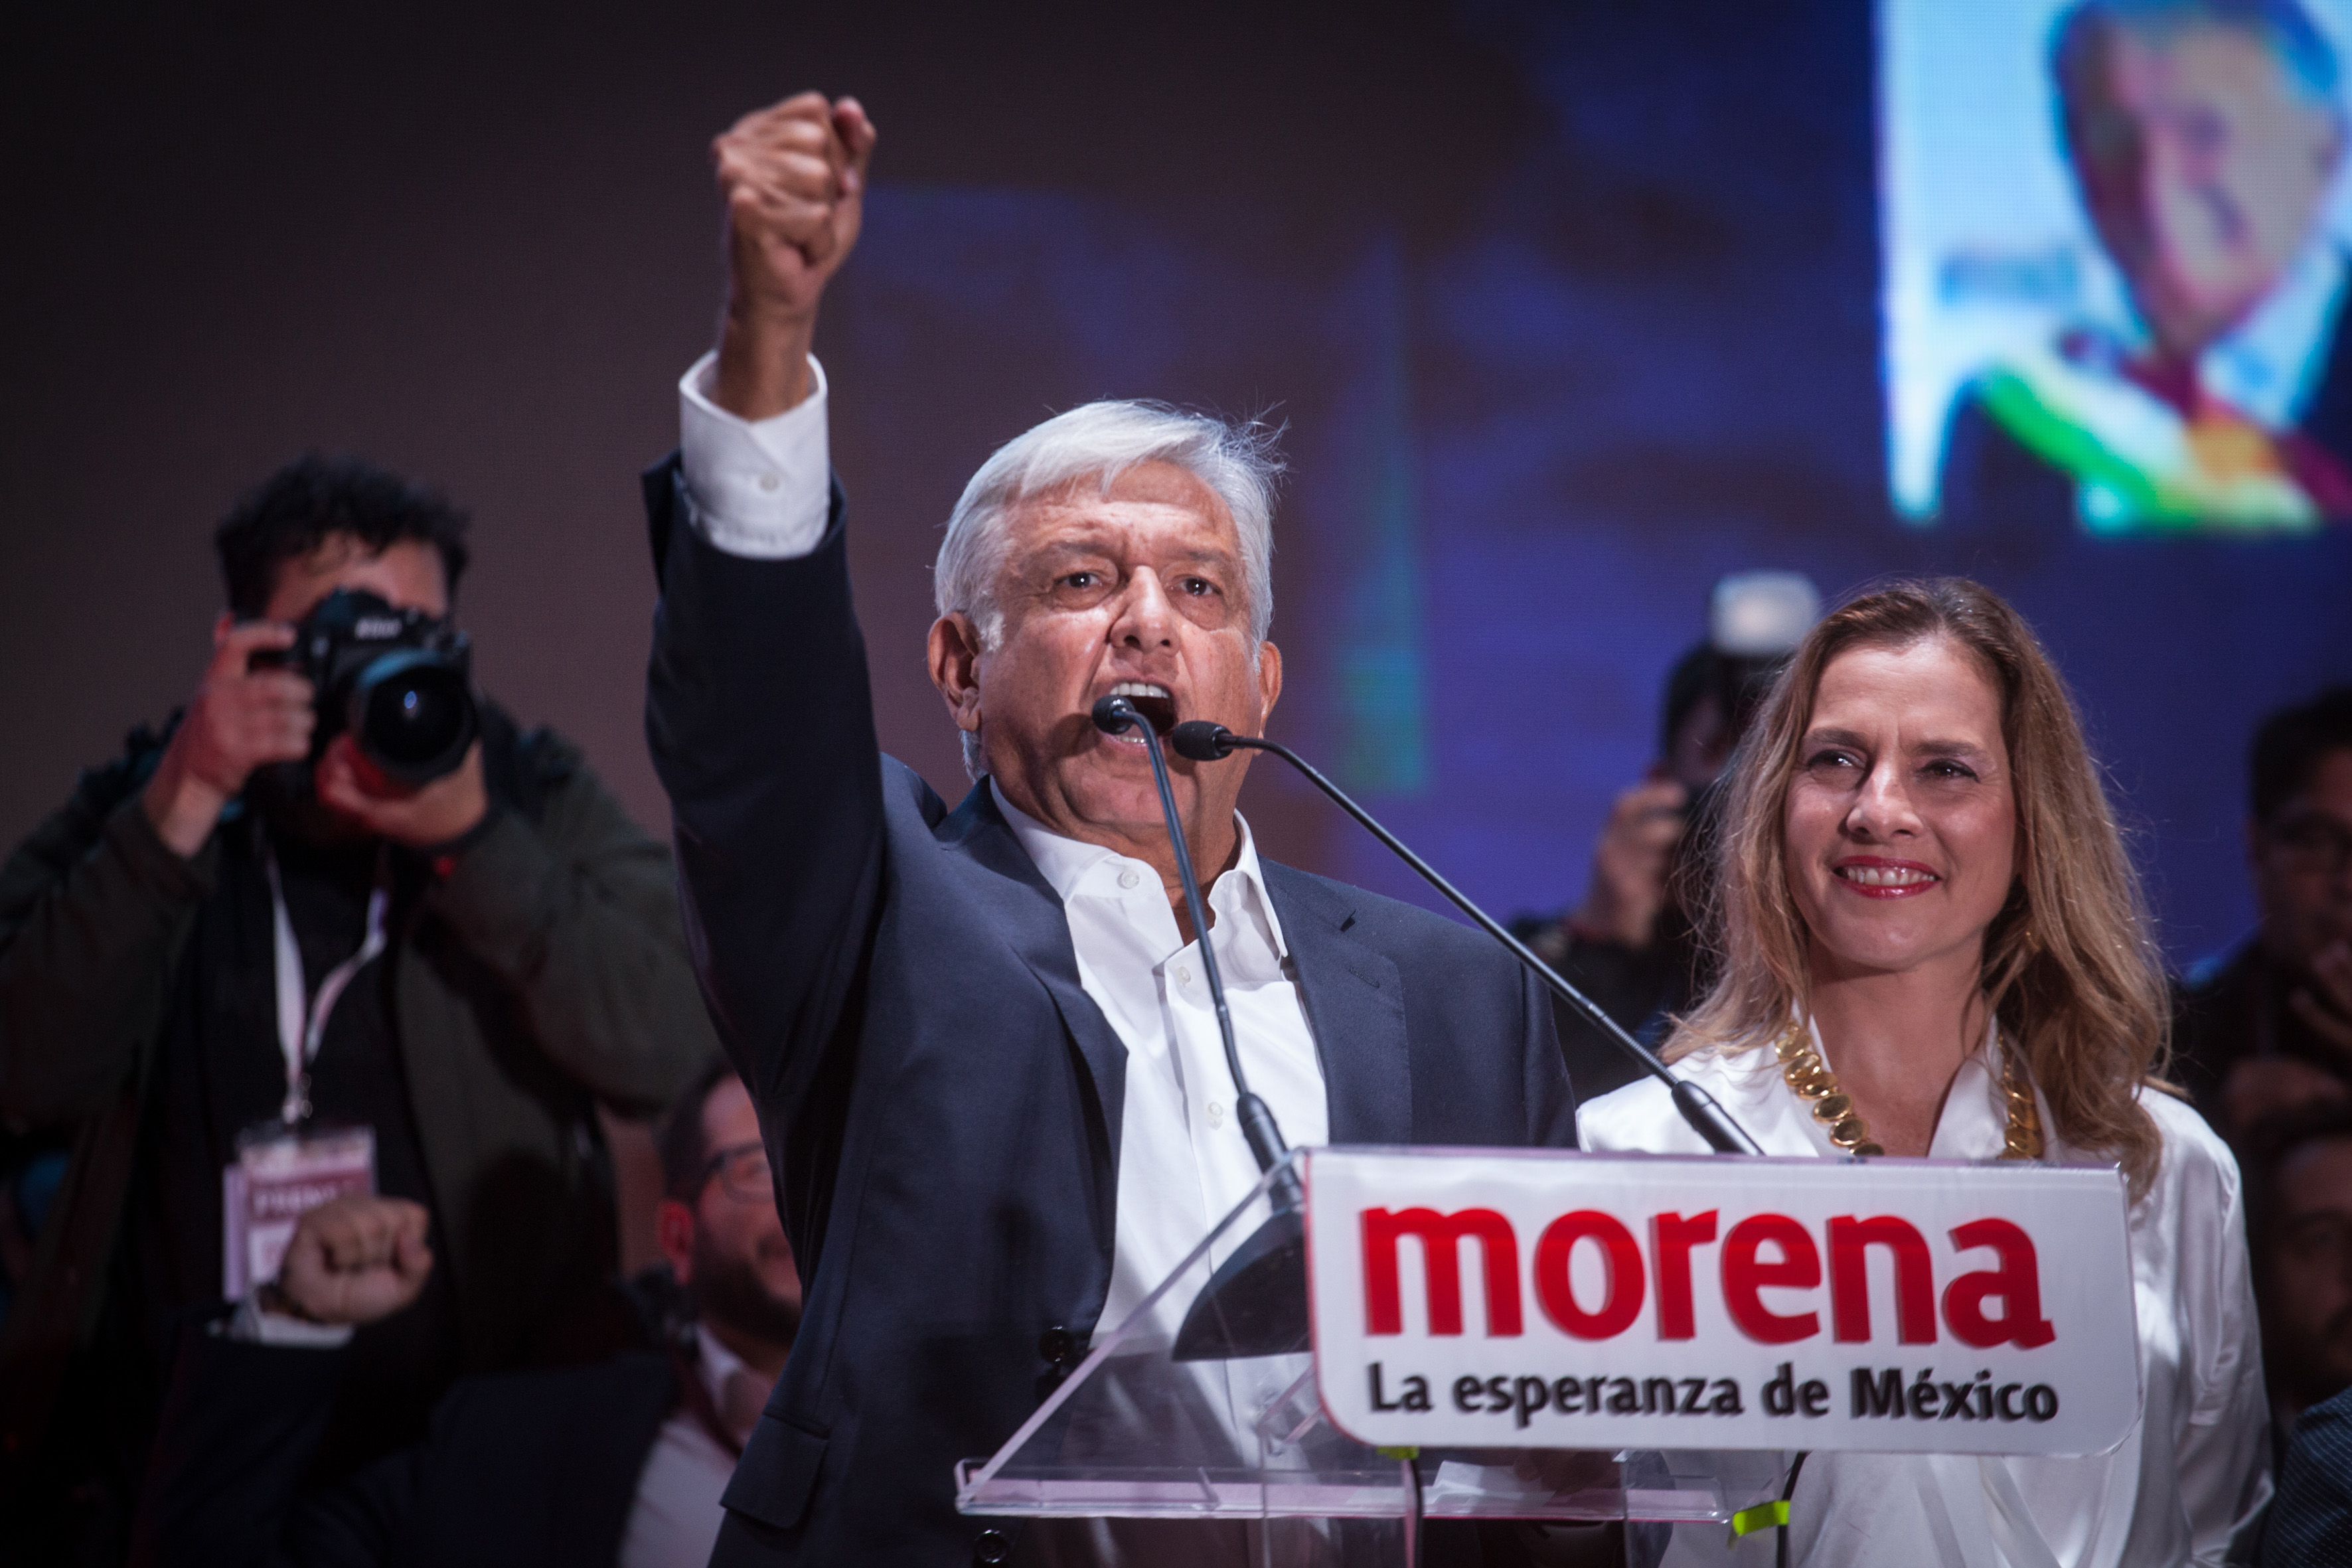 President elect, Andres Manuel Lopez Obrador speaks during the celebration event, at the end of the Mexico 2018 Presidential Election on July 1, 2018 in Mexico City, Mexico.